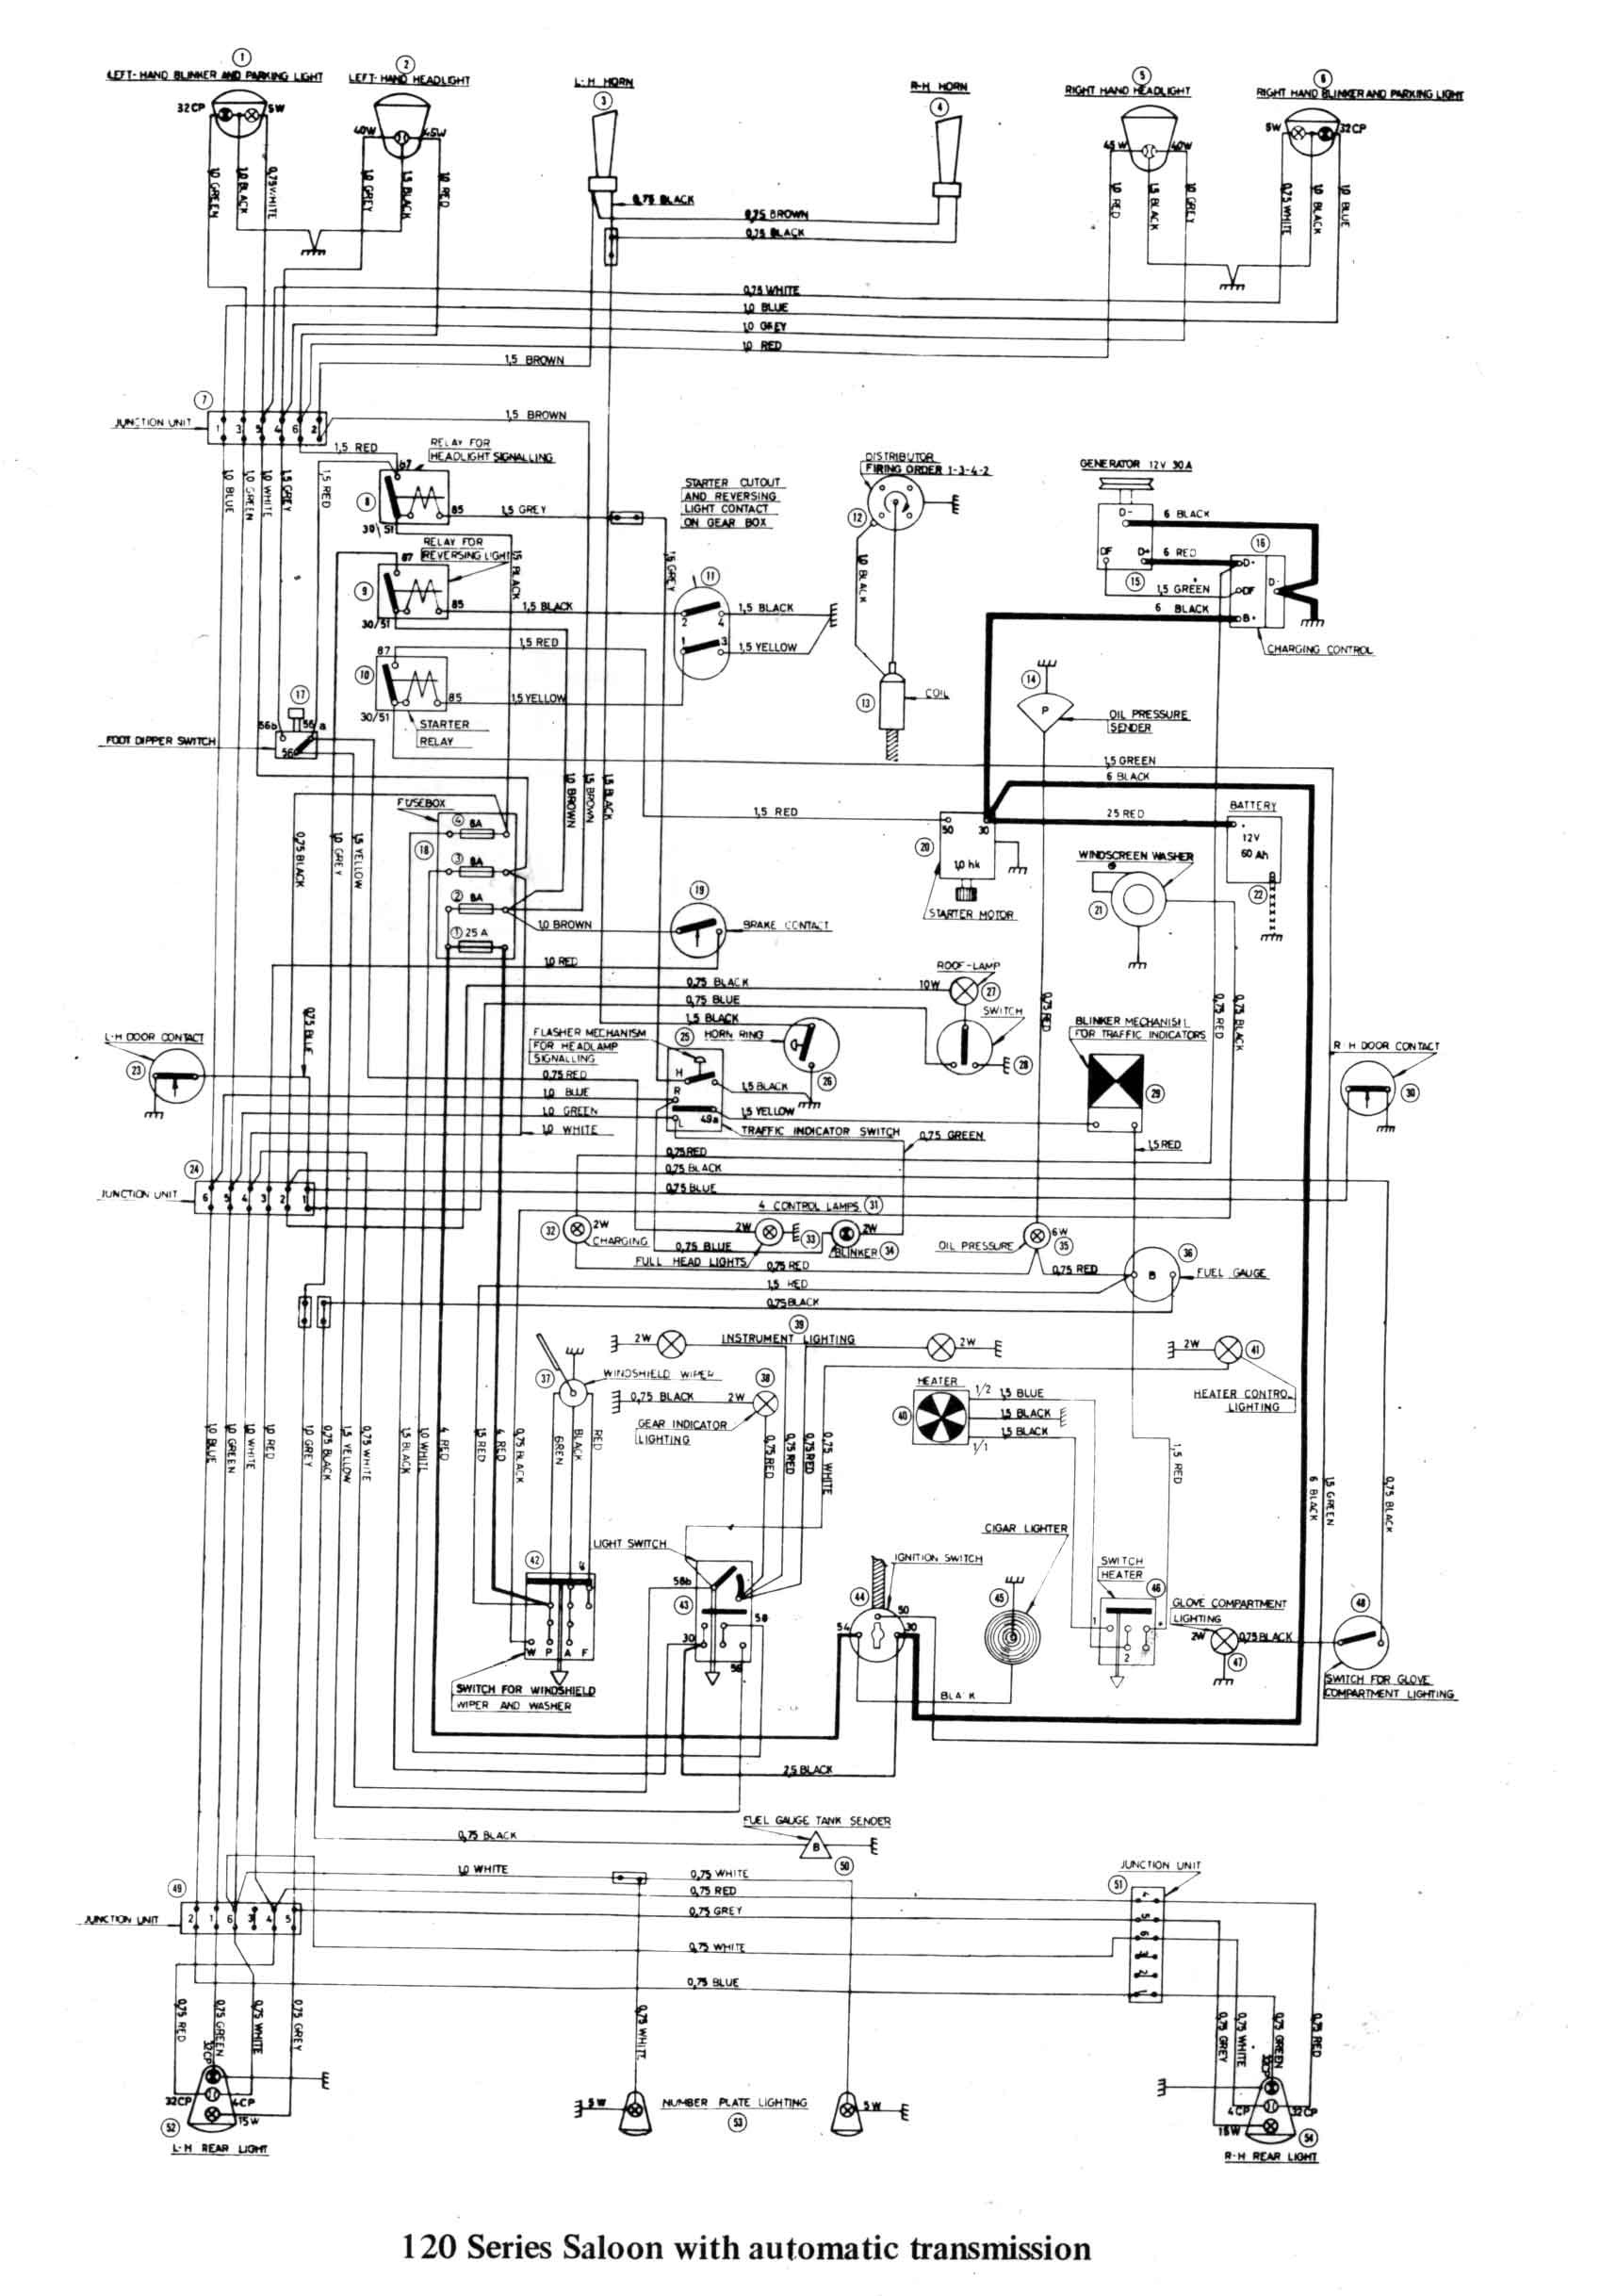 1999 volvo s70 wiring diagram online schematic diagram u2022 rh muscle pharma co 1999 volvo s70 radio wiring diagram Volvo S60 Wiring-Diagram